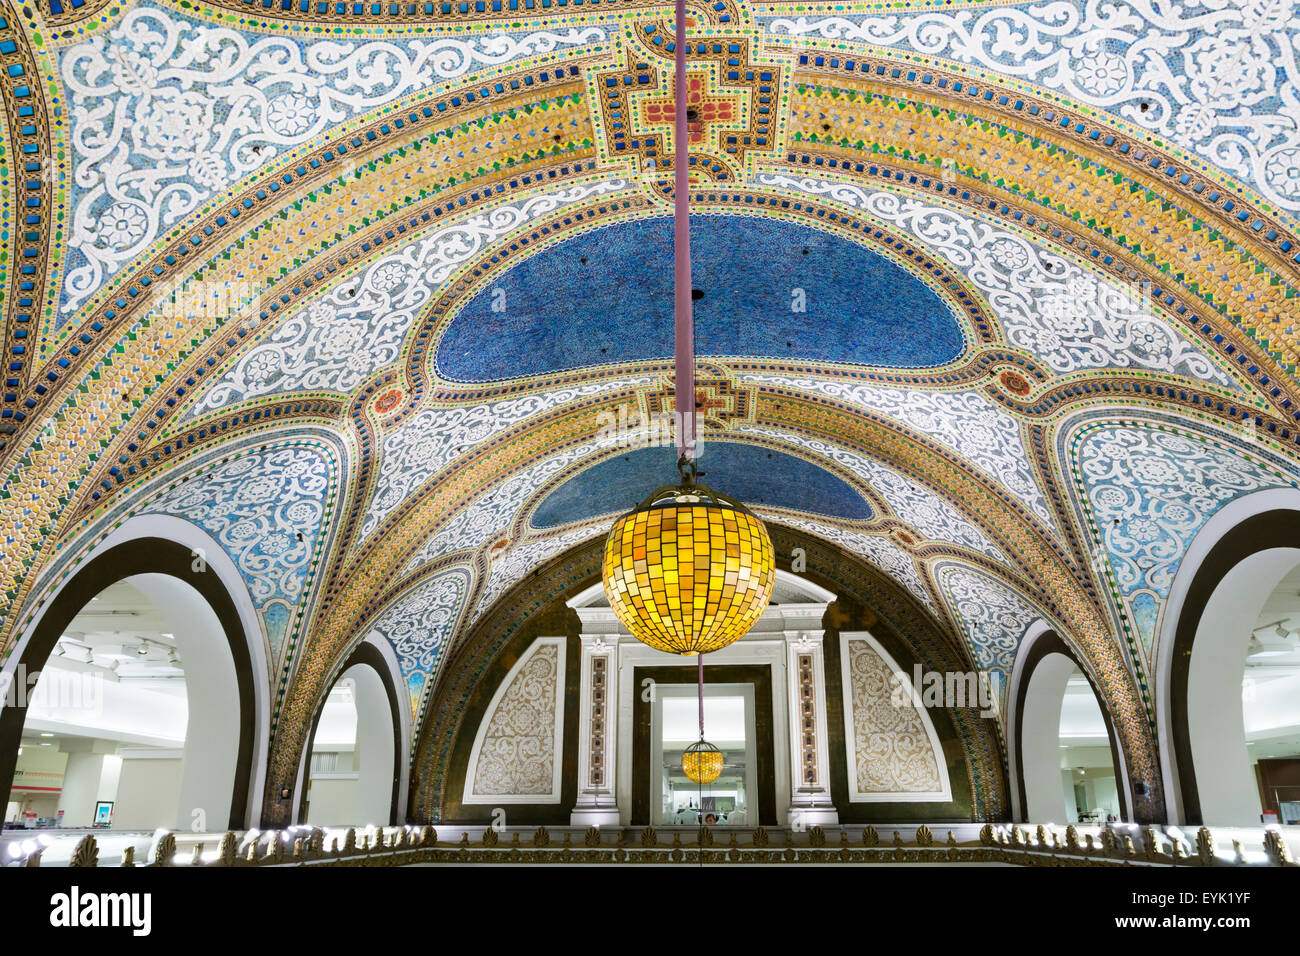 The Tiffany Co Favrile Glass Mosaic Ceiling Above A 5 Storey